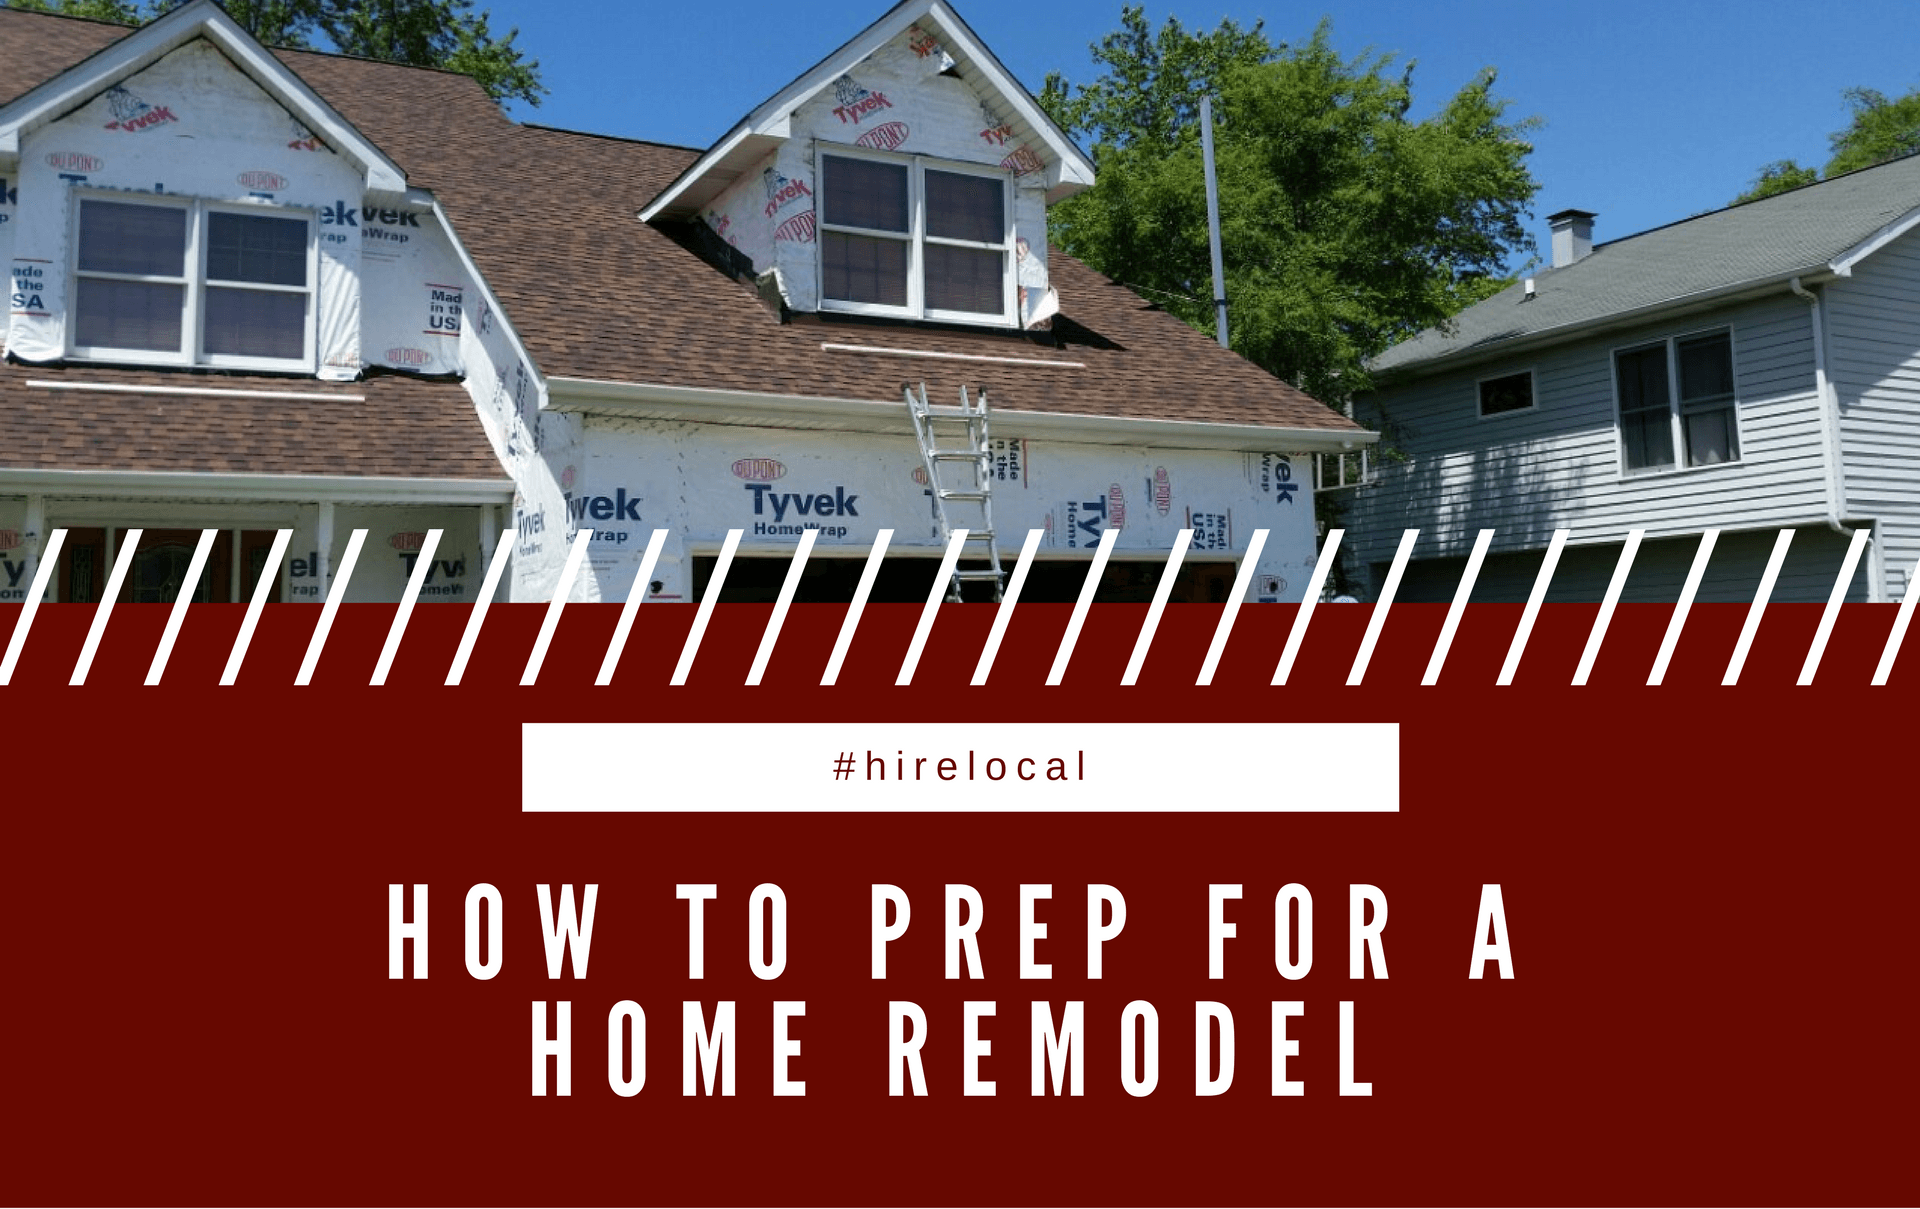 How To Prep For A Home Remodel